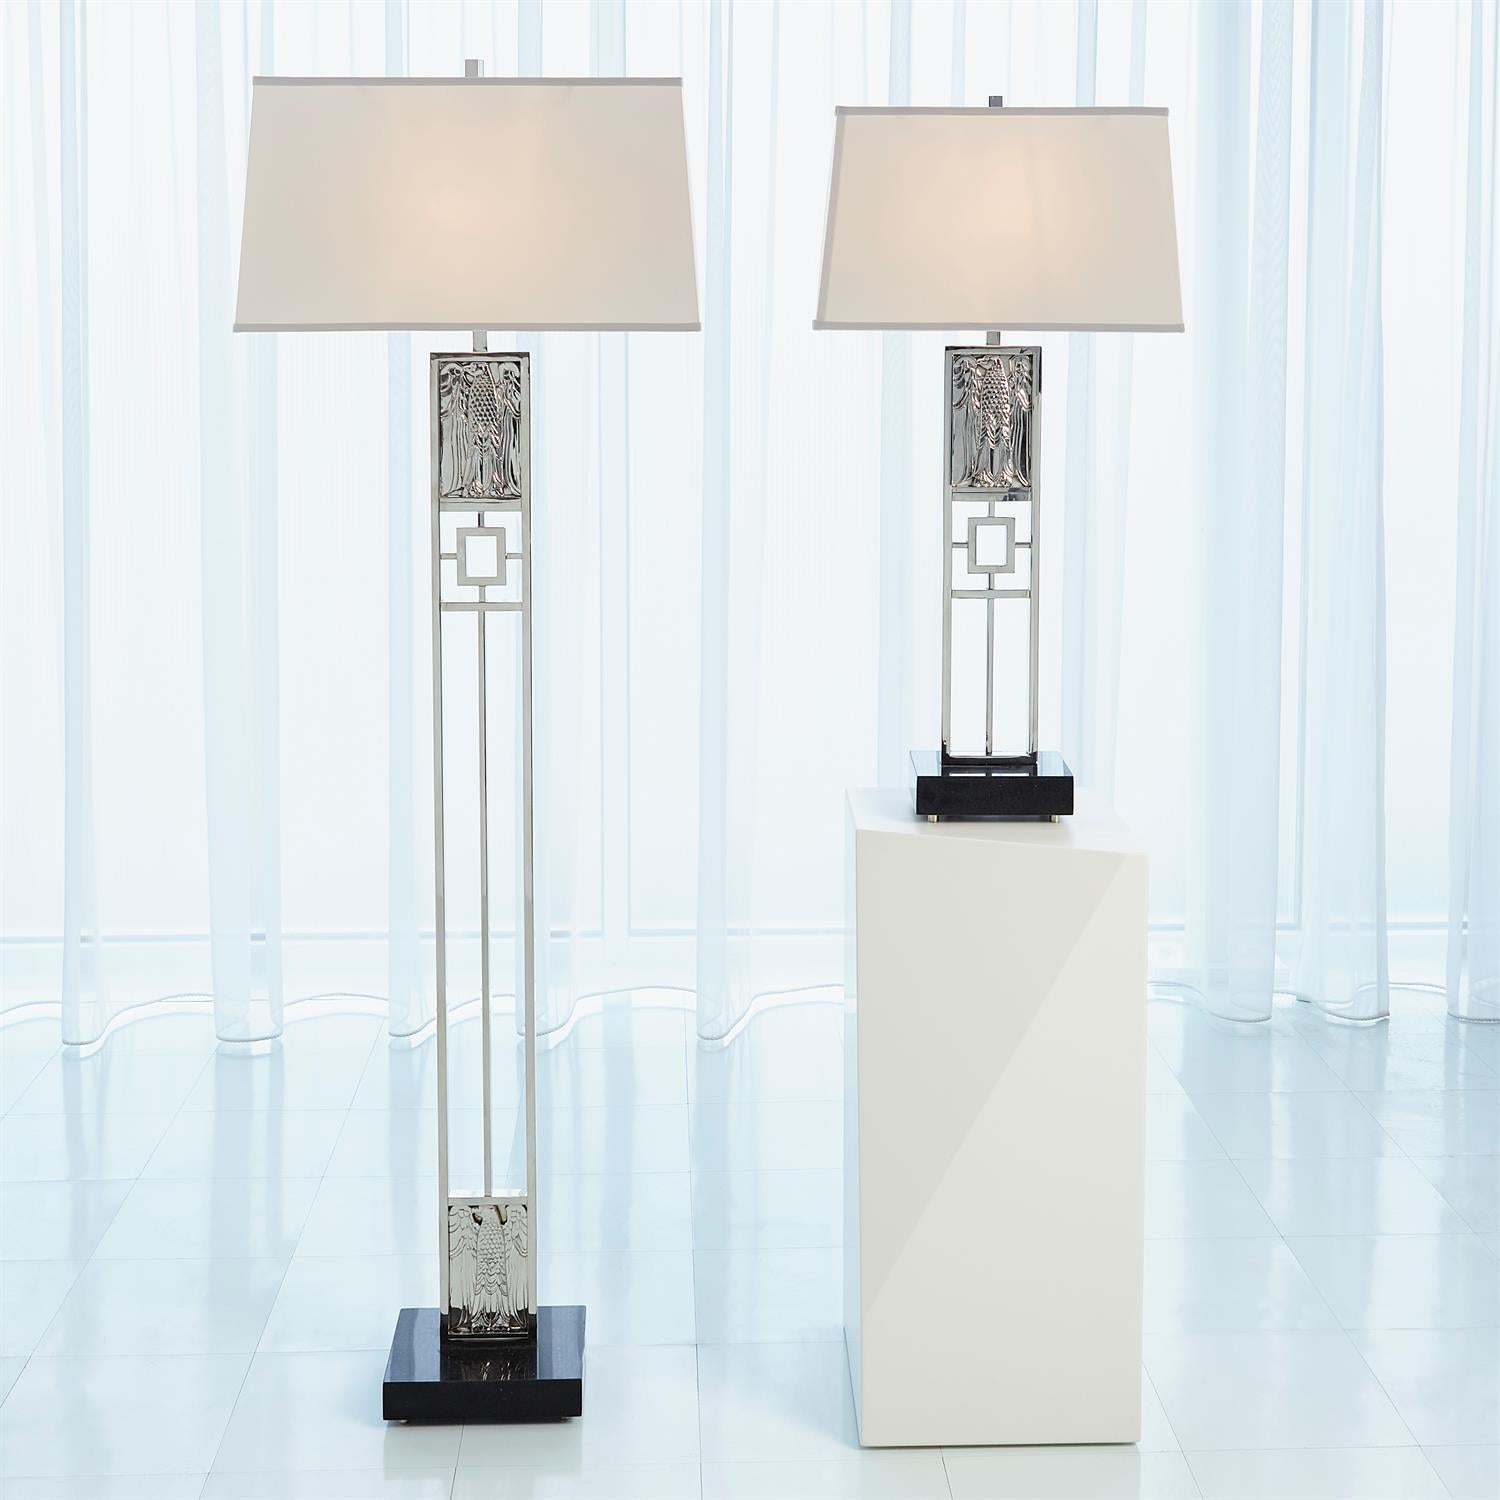 Republic Floor Lamp Nickel Grats Decor Interior Design Build